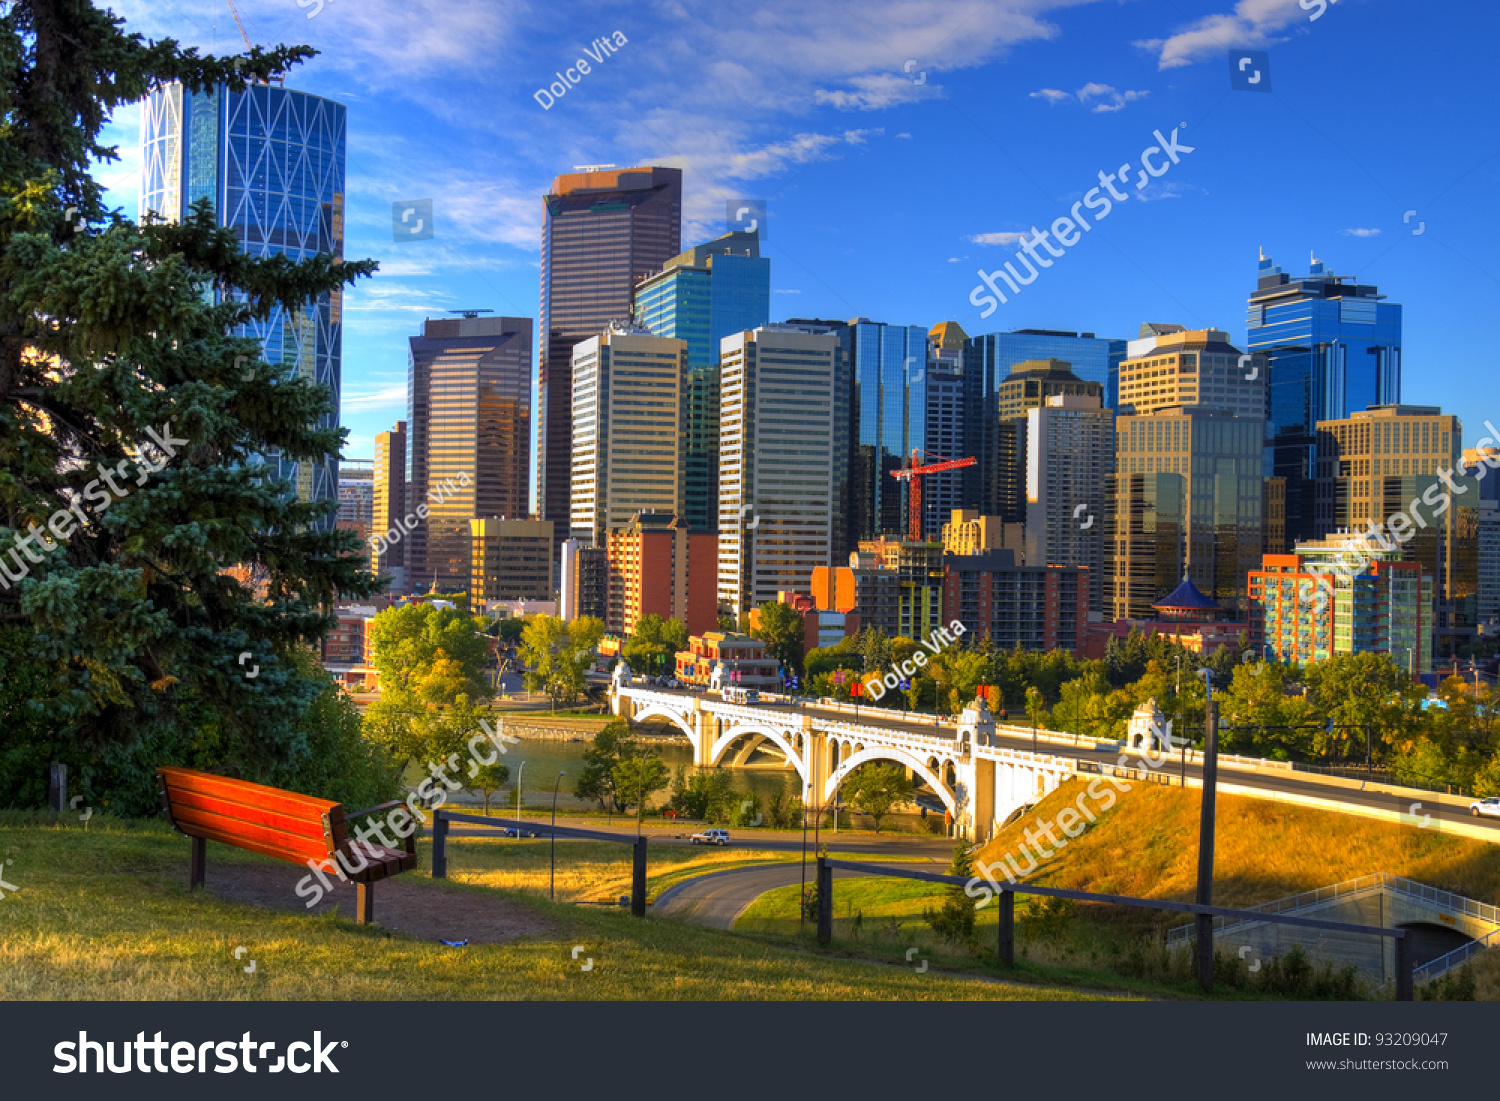 Hdr Park Bench Overlooking Skyscrapers Calgary Stock Photo 93209047 Shutterstock